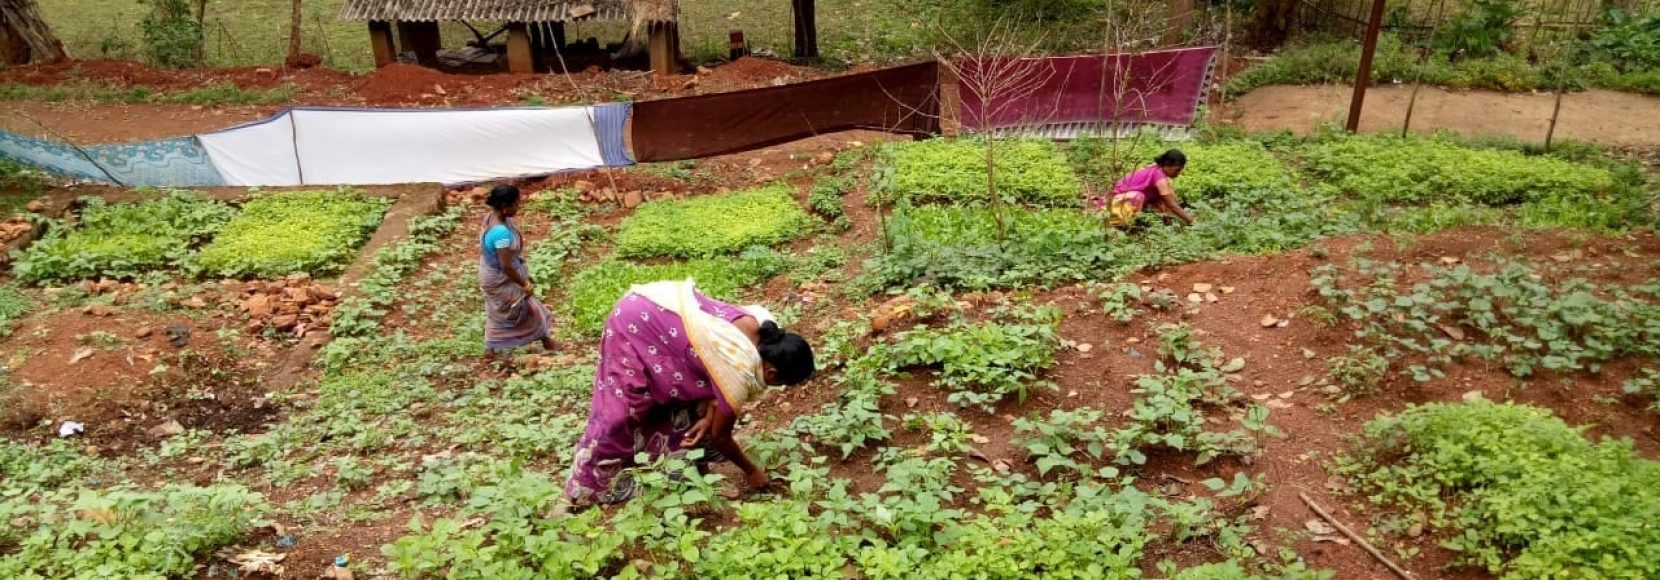 Women taking care of plants in an organic kitchen garden in India